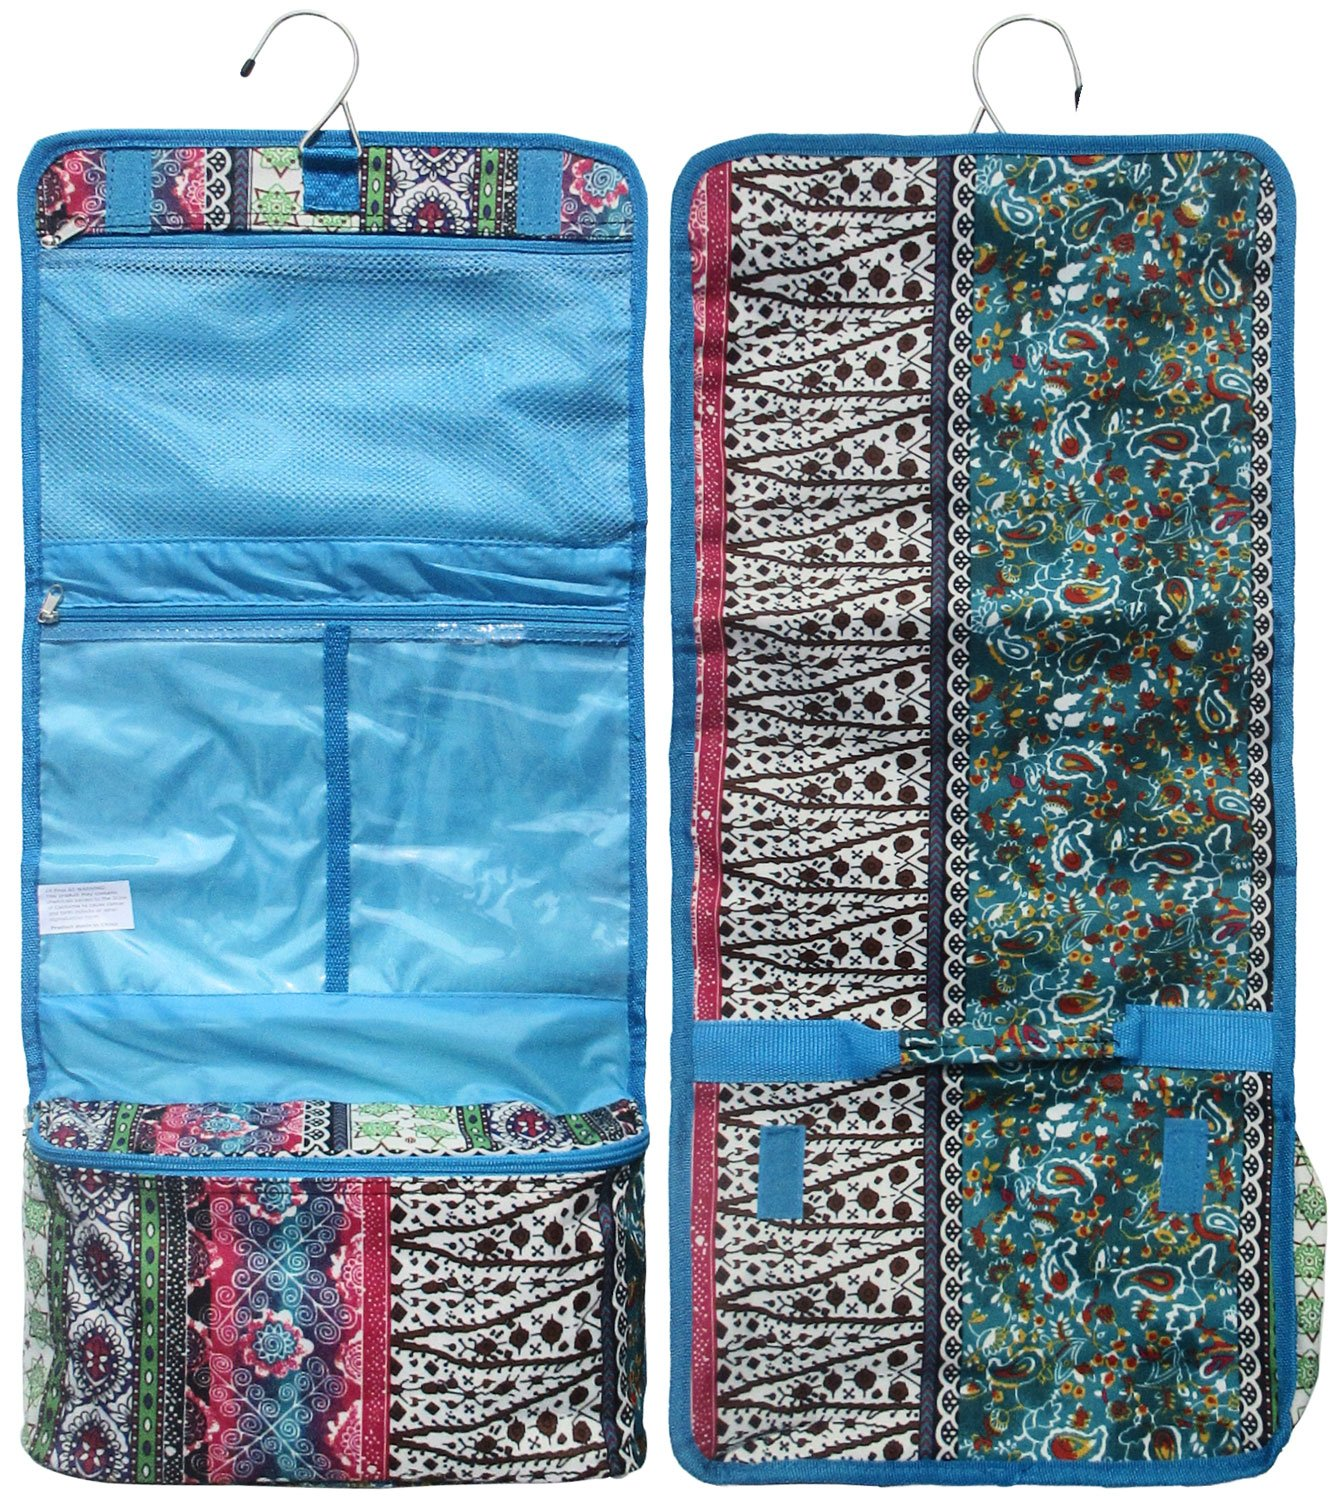 Best Turquoise Quilted Look Boho Hanging Toiletry Cosmetic Makeup Jewelry Travel Summer Camp Accessories Bag Pouch Case Top Unique Special Fun Gift Idea Under 20 Dollar for Wife Women Her Mom Mommy